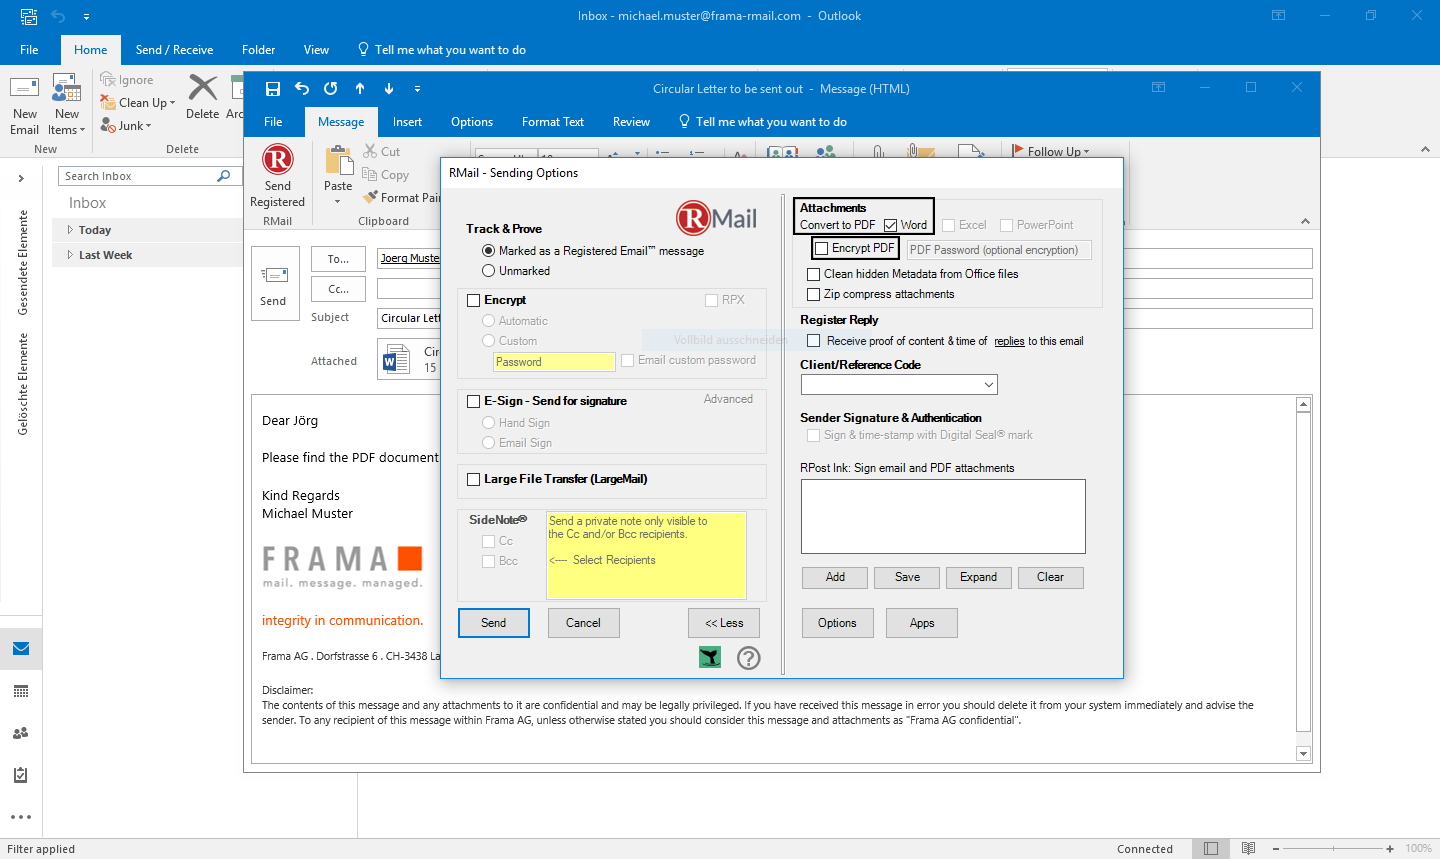 Convert attachments to PDF with Outlook - Step 3